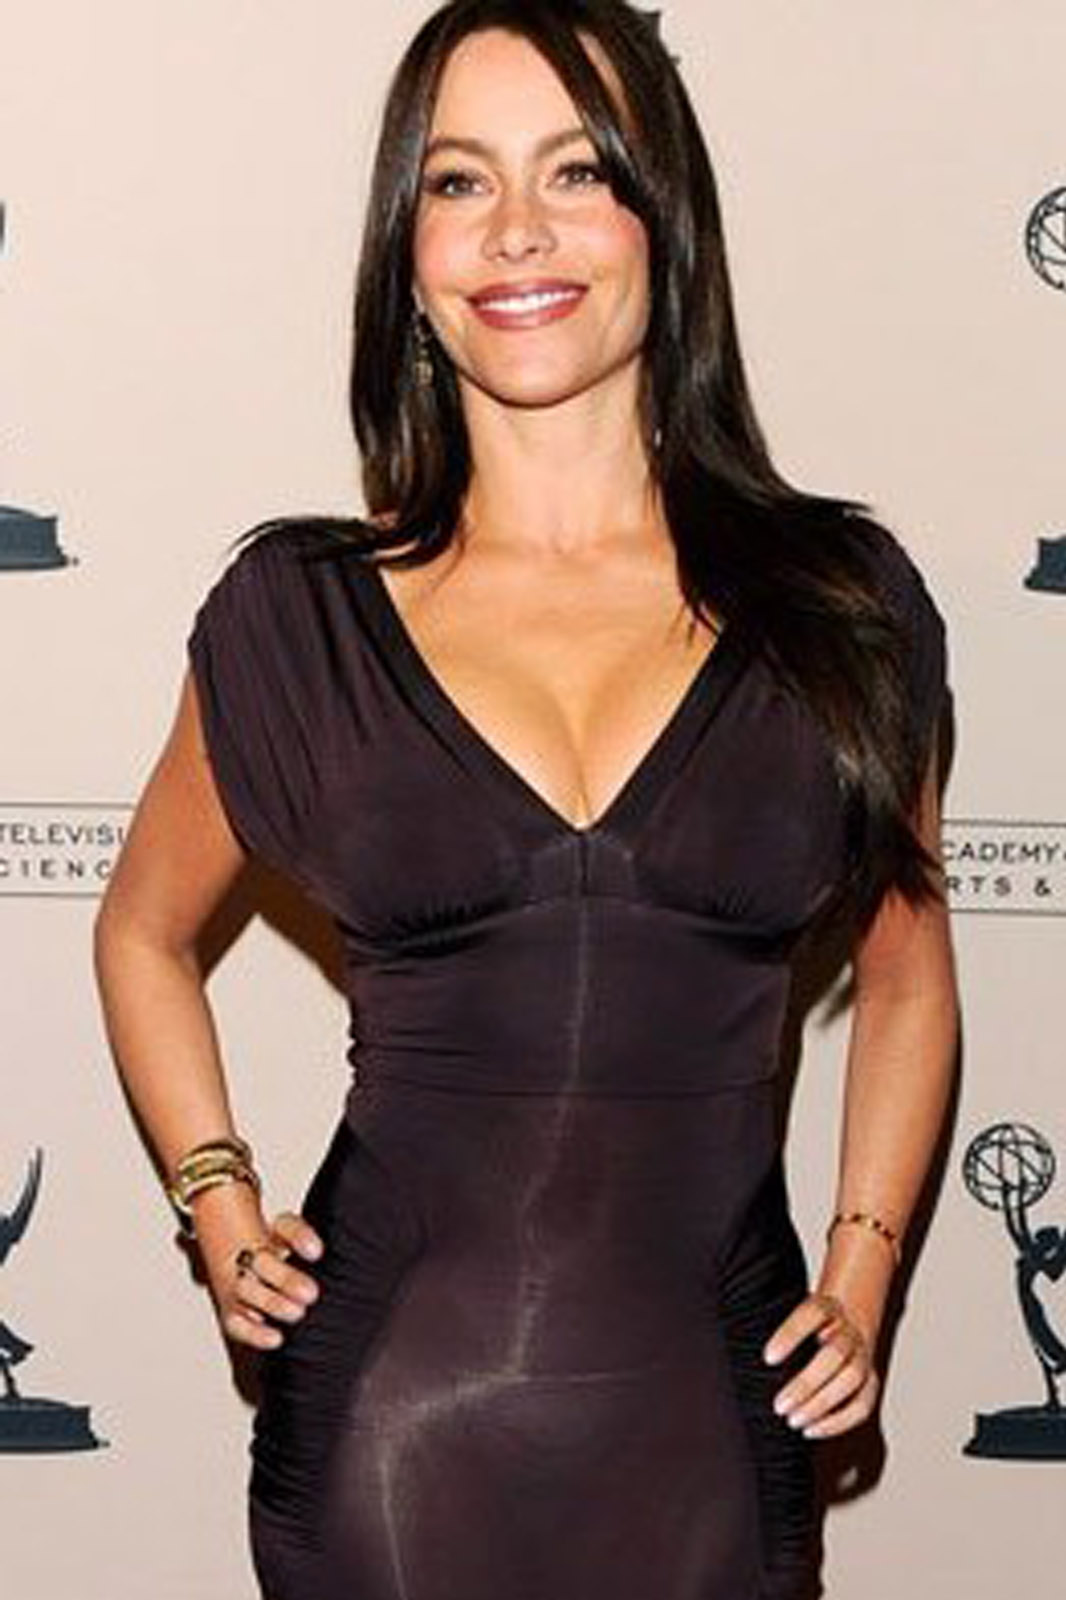 Sofia Vergara Soul Plane Sofia Vergara Latest Pictures Sofia Vergara Wallpapers